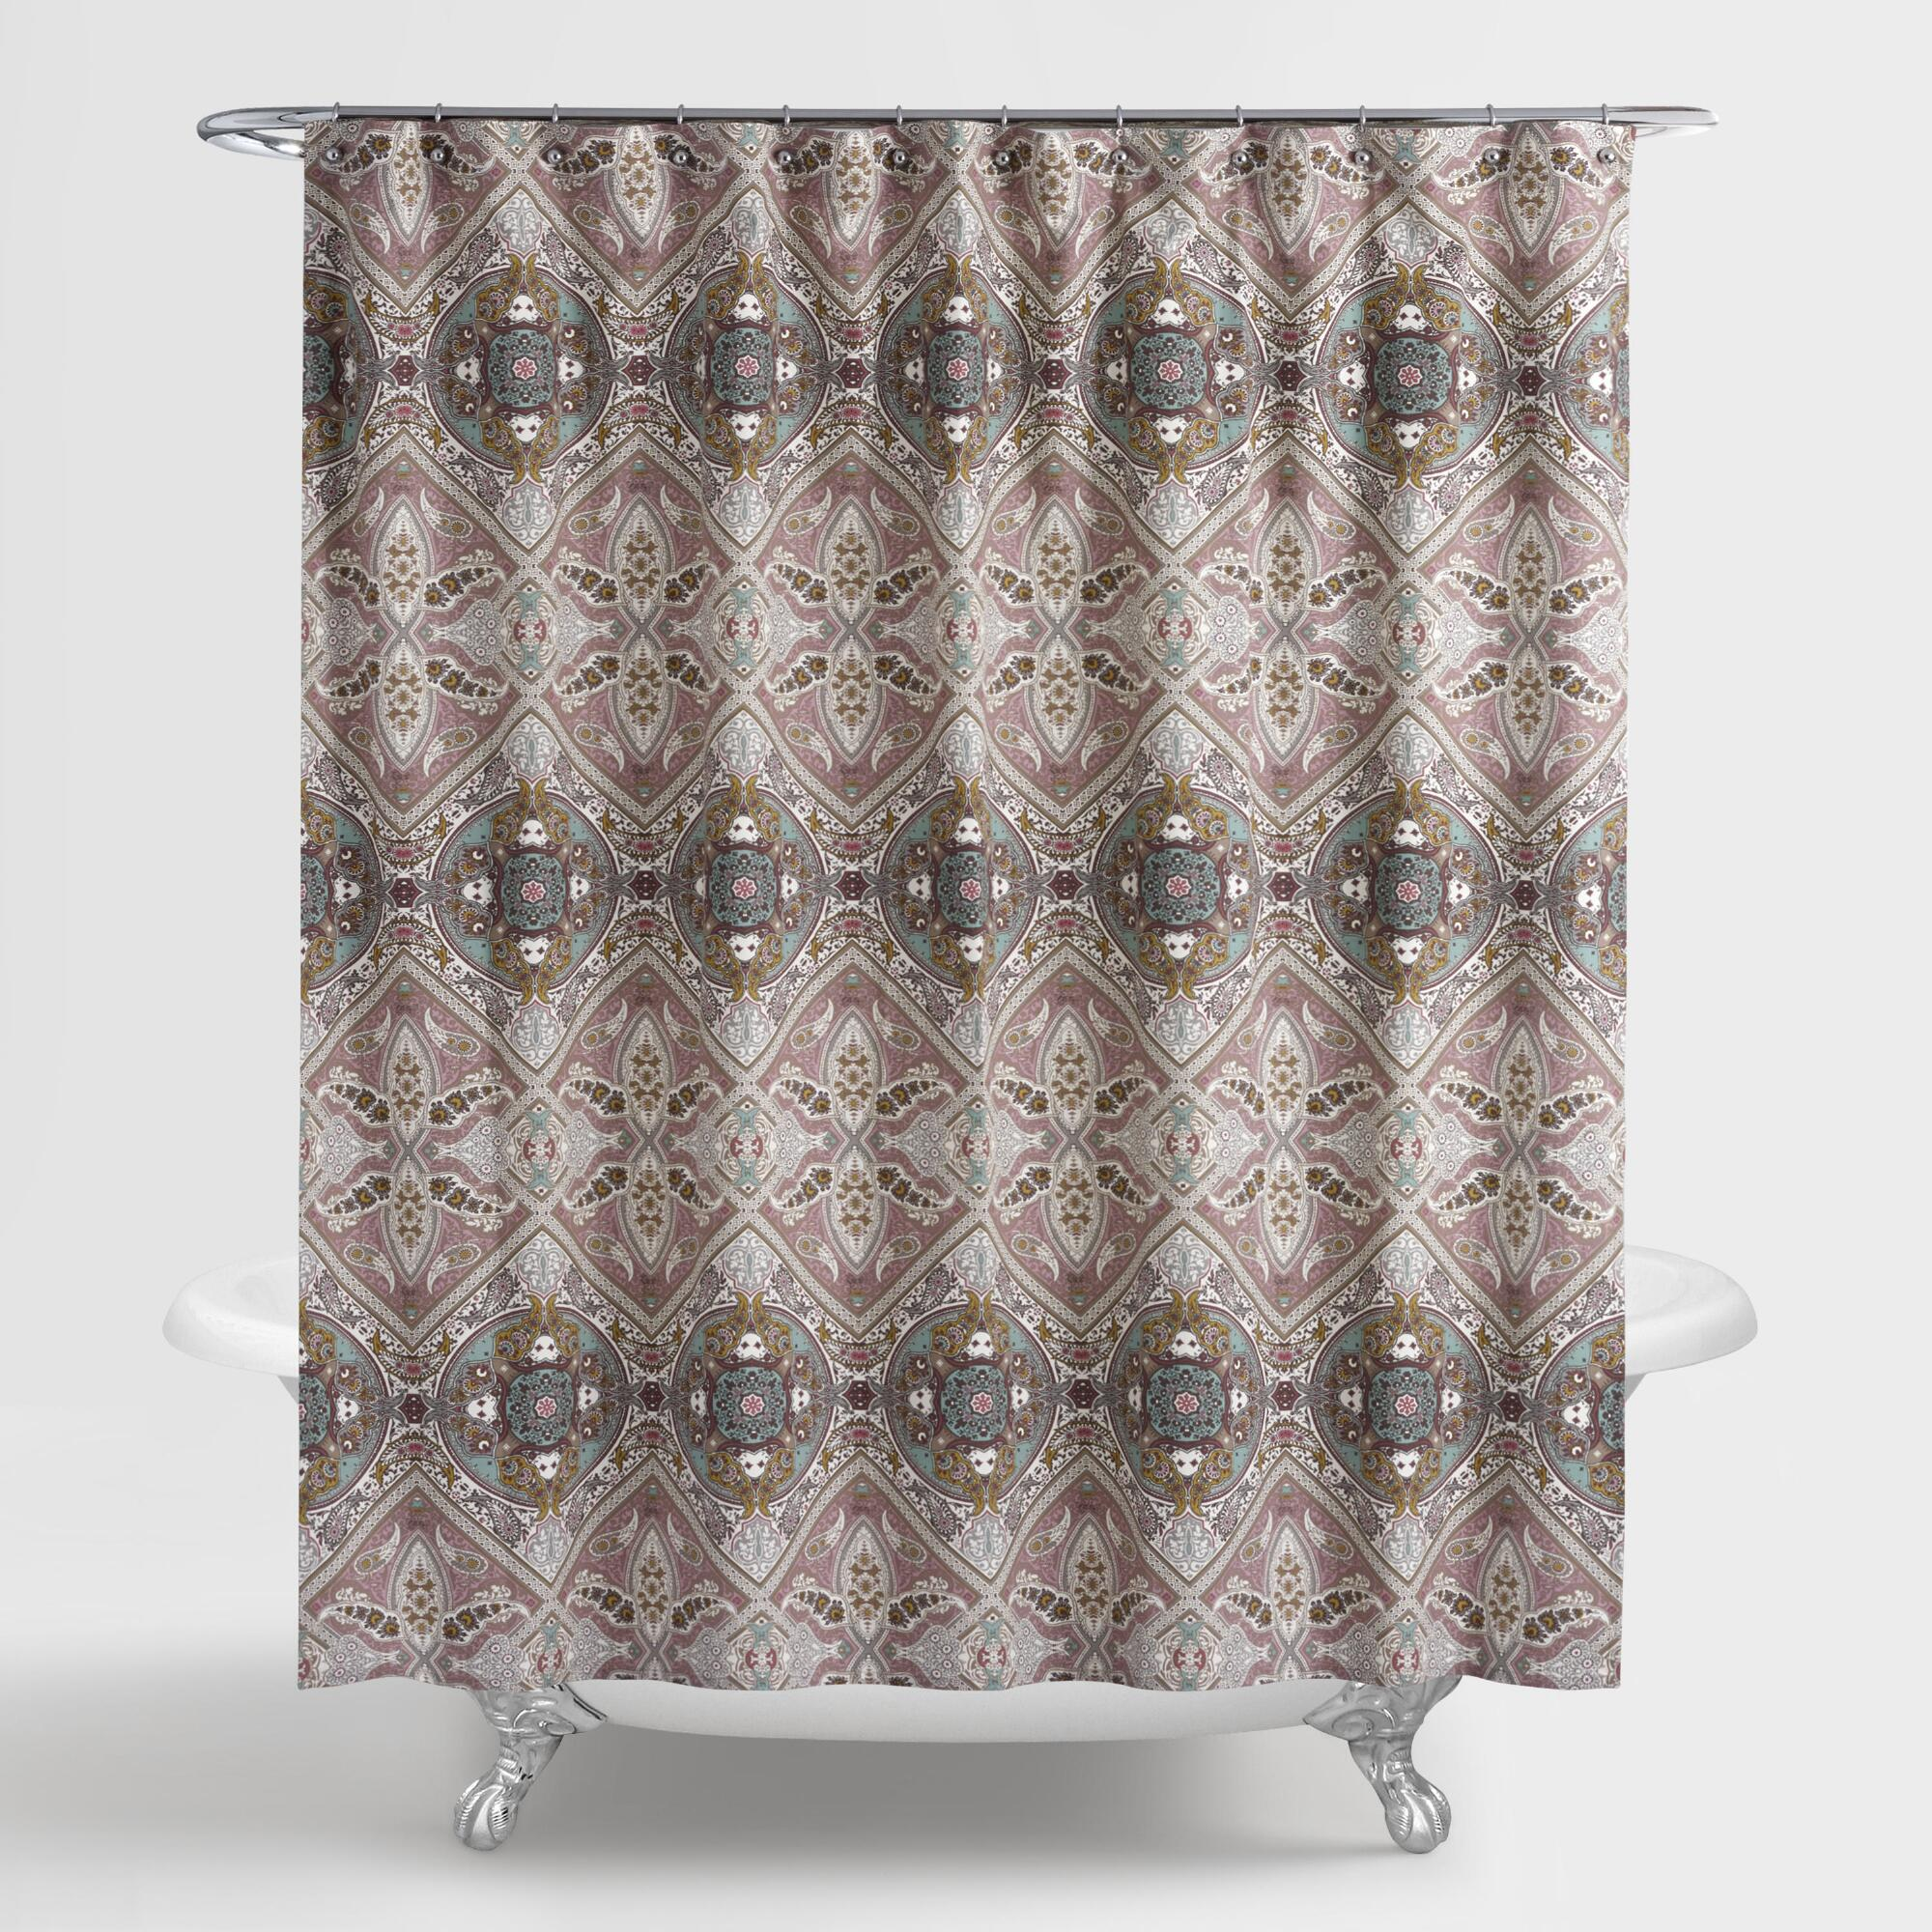 Throw pillows cards mugs shower curtains - Lilac And Taupe Medallion Donatella Shower Curtain